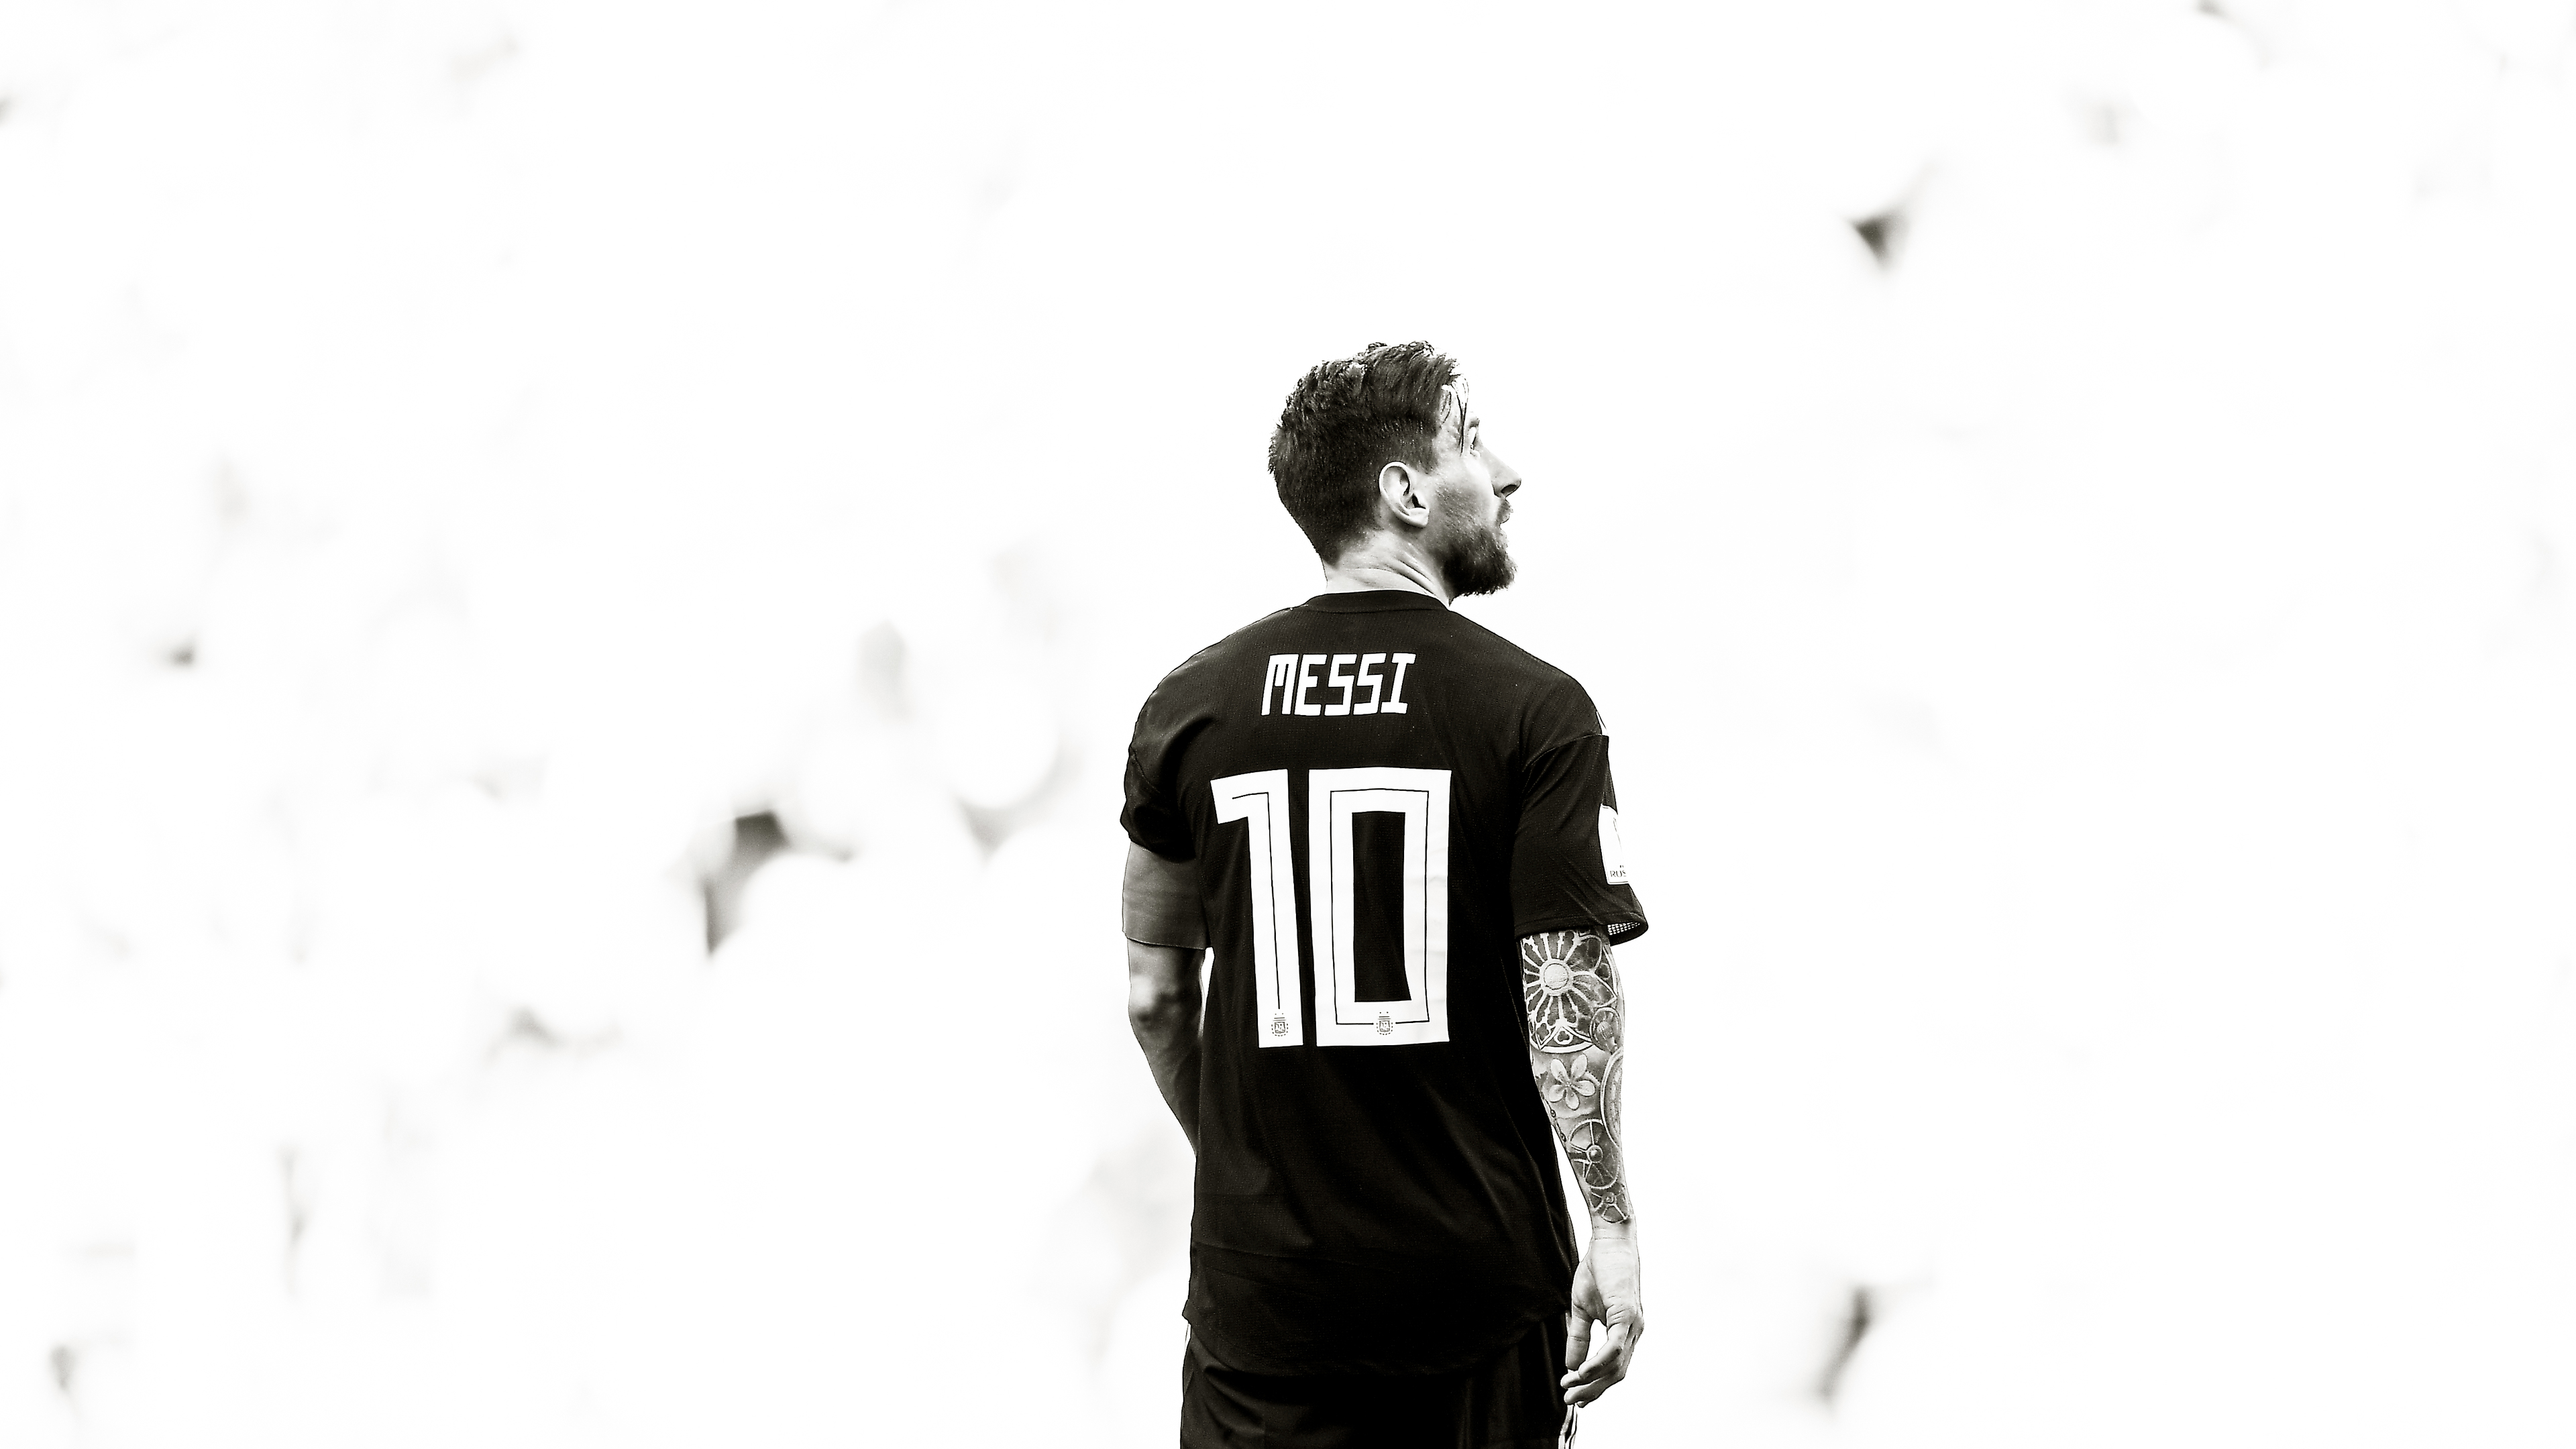 lionel messi monochrome 1538786874 - Lionel Messi Monochrome - sports wallpapers, male celebrities wallpapers, Lionel Messi wallpapers, hd-wallpapers, football wallpapers, fifa world cup russia wallpapers, boys wallpapers, 4k-wallpapers